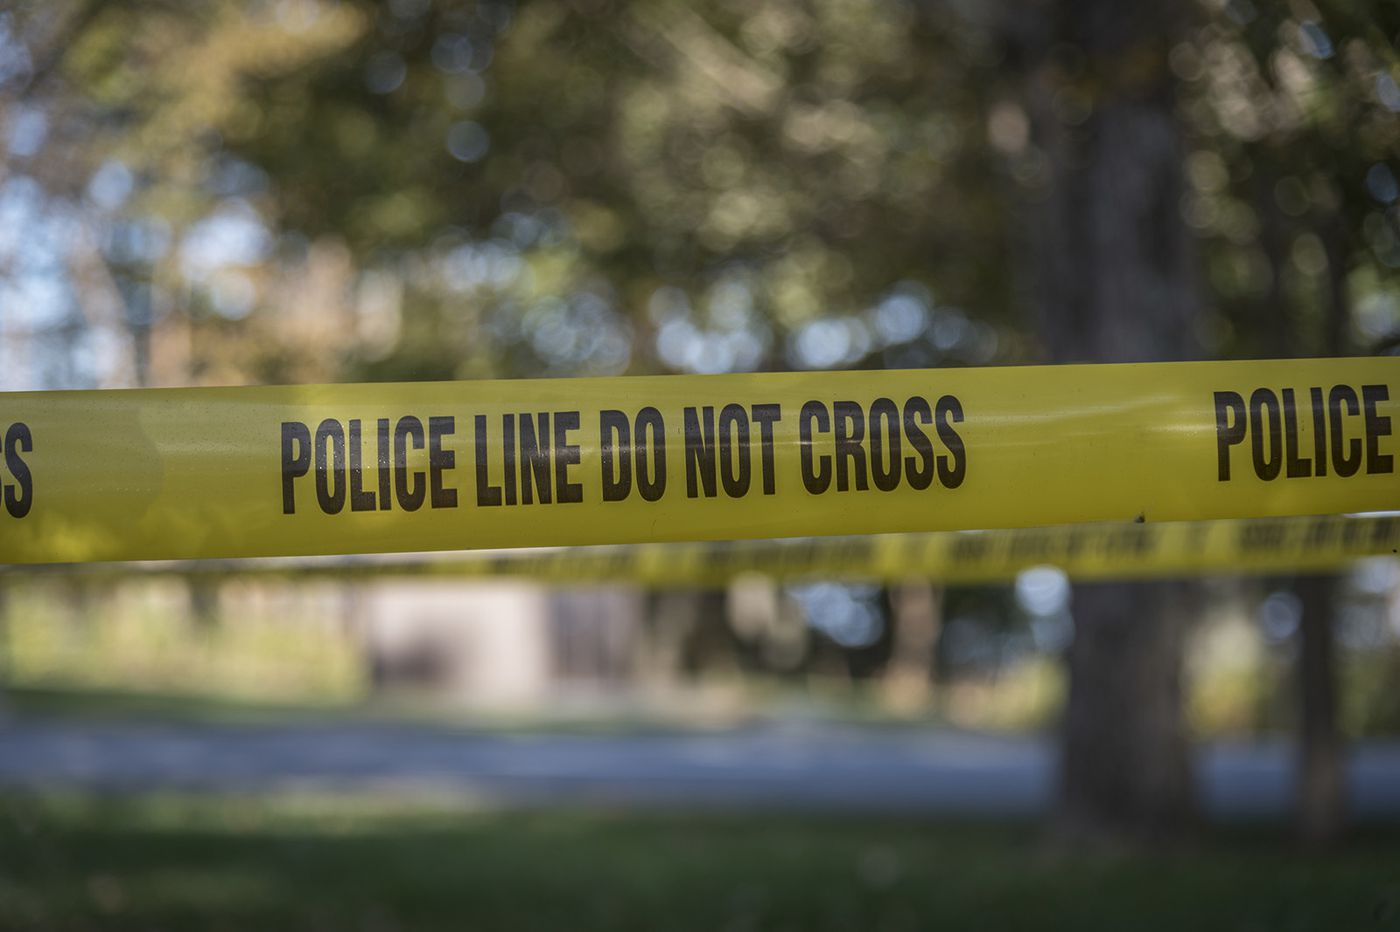 Man shot dead at South Jersey house party